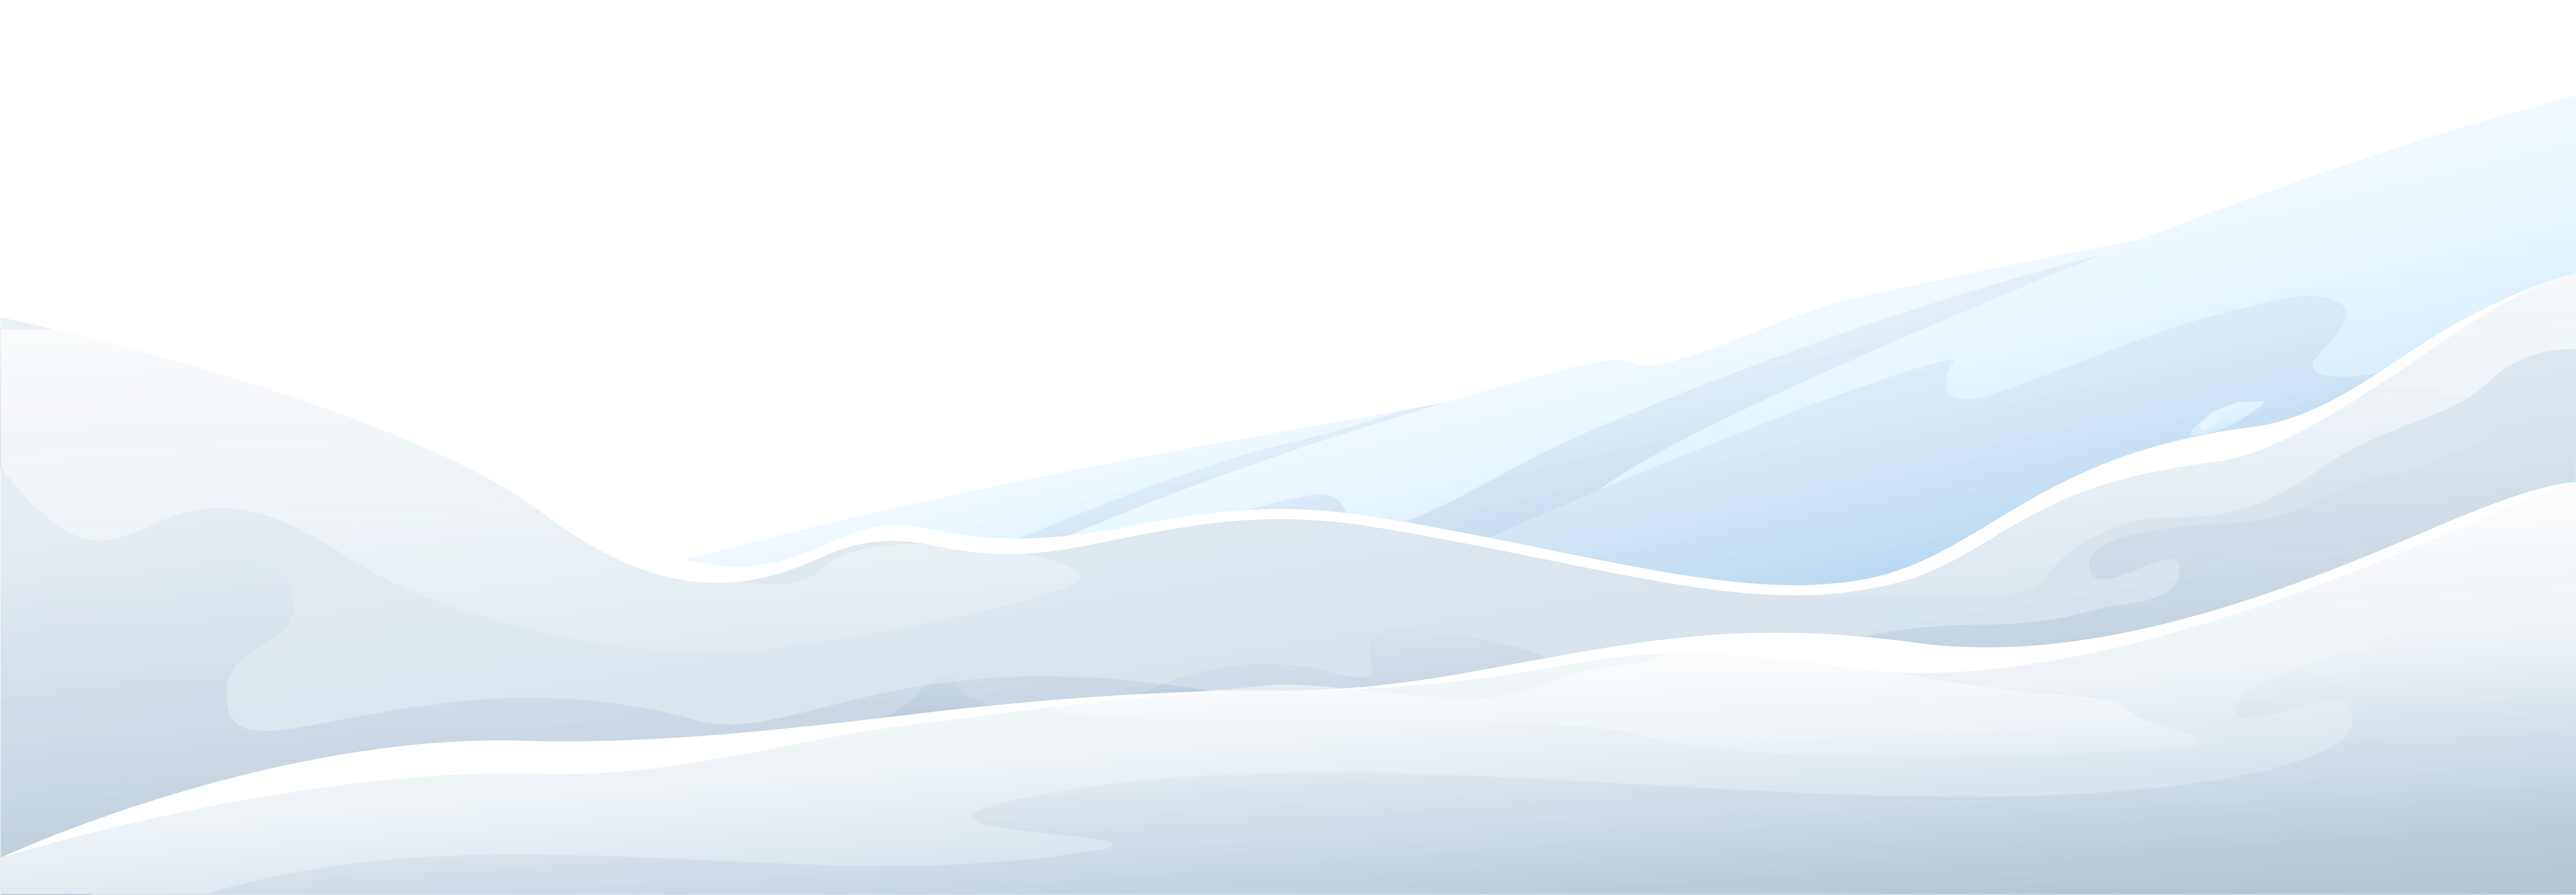 Image Gallery of Snow Pile Png.